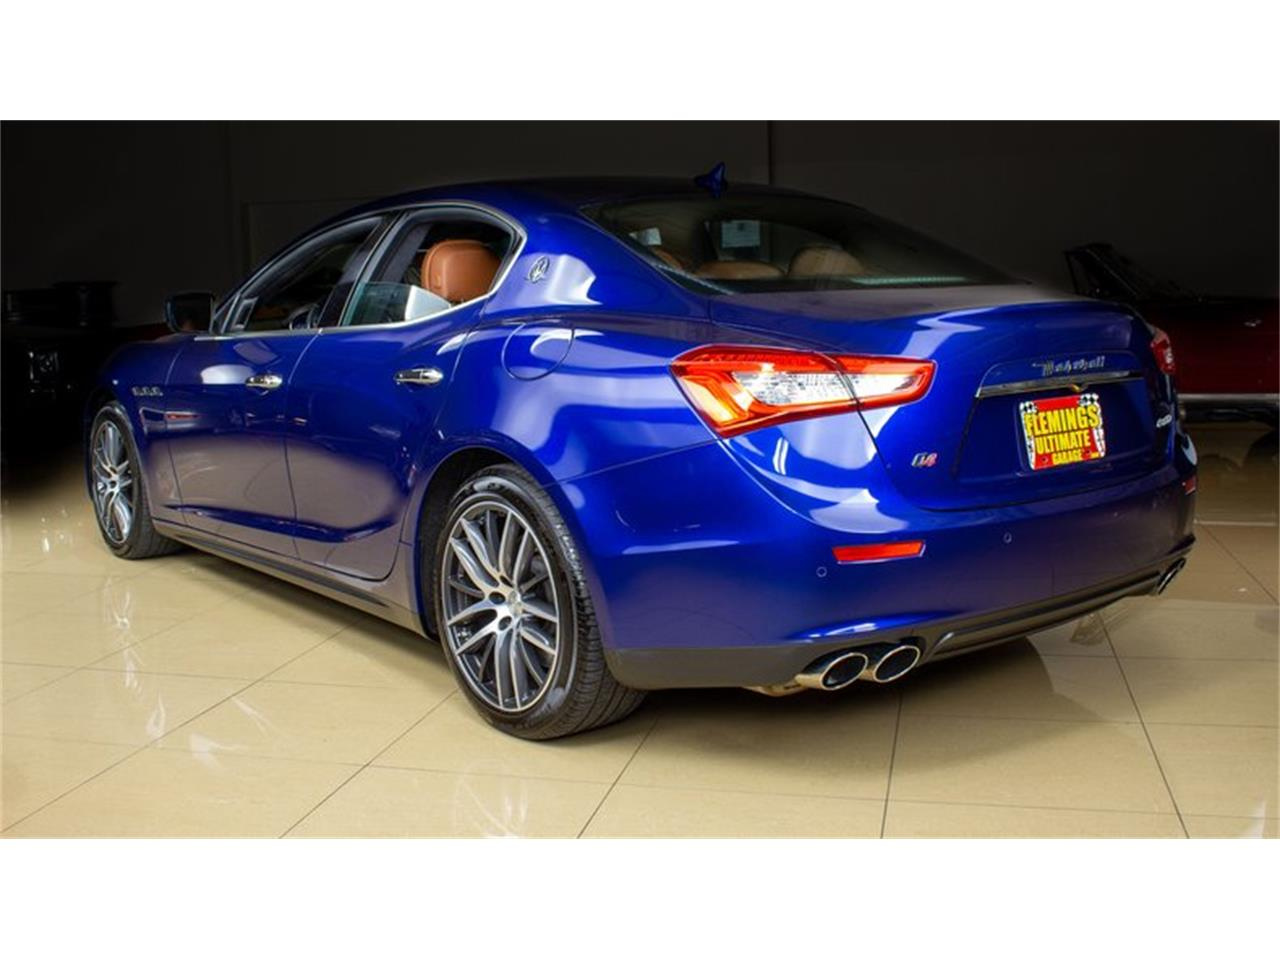 2016 Maserati Ghibli (CC-1258782) for sale in Rockville, Maryland